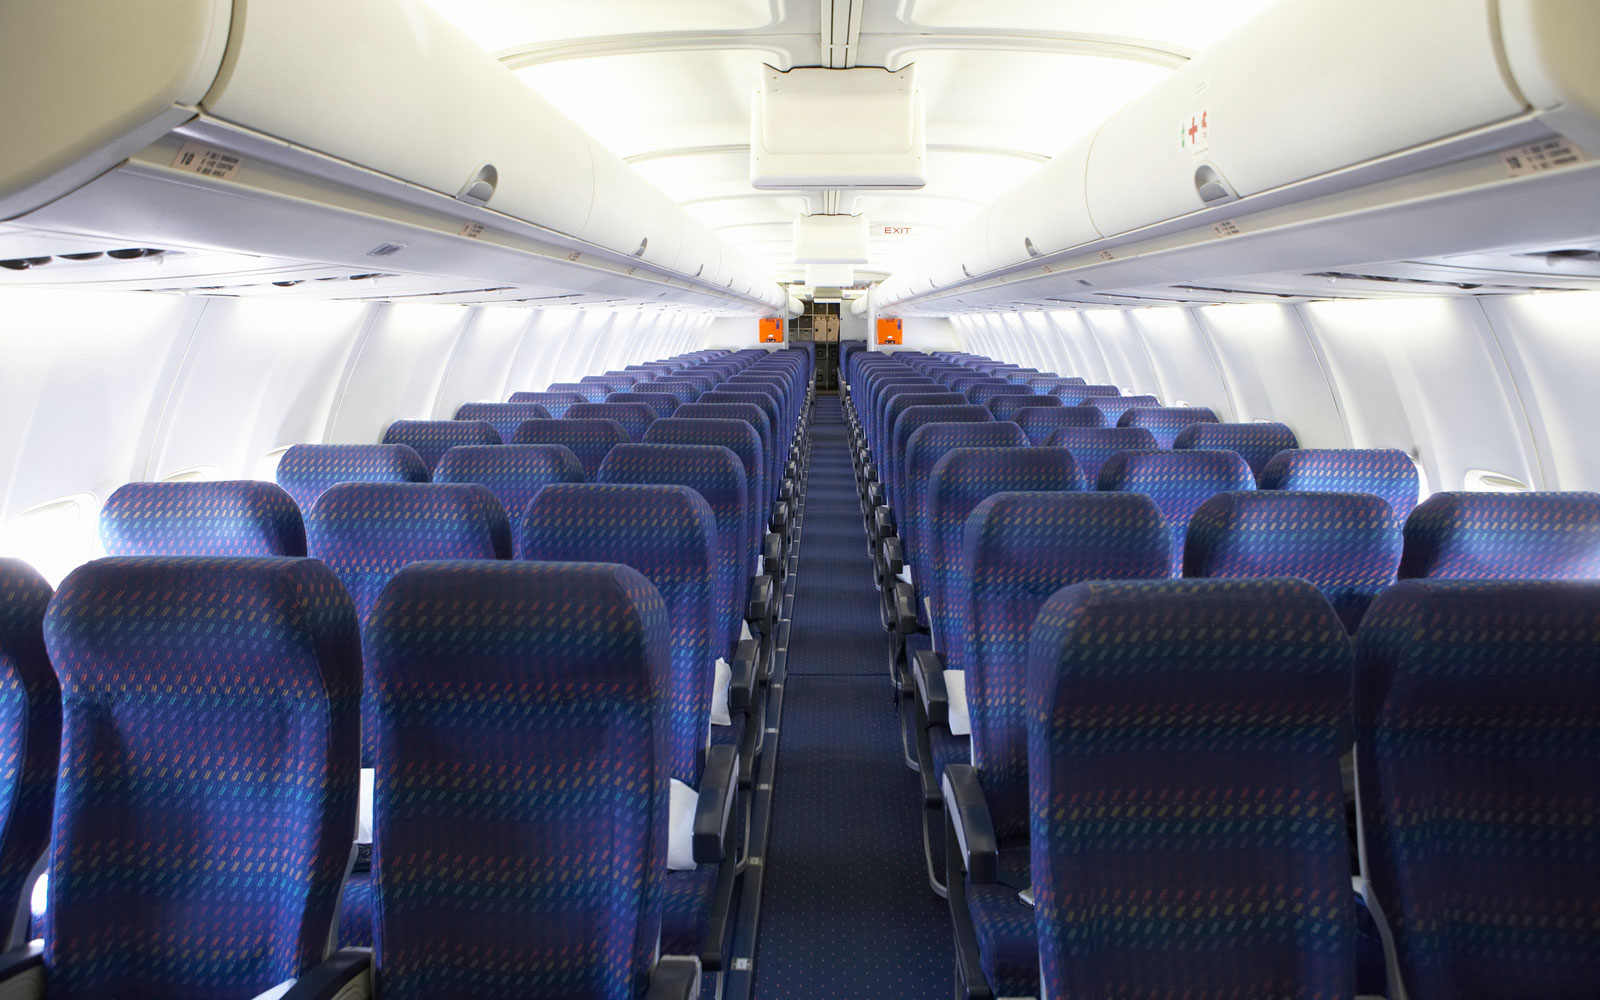 Film Director Finds He's the Only Passenger on Plane, Decides to Chronicle His Solo Flight